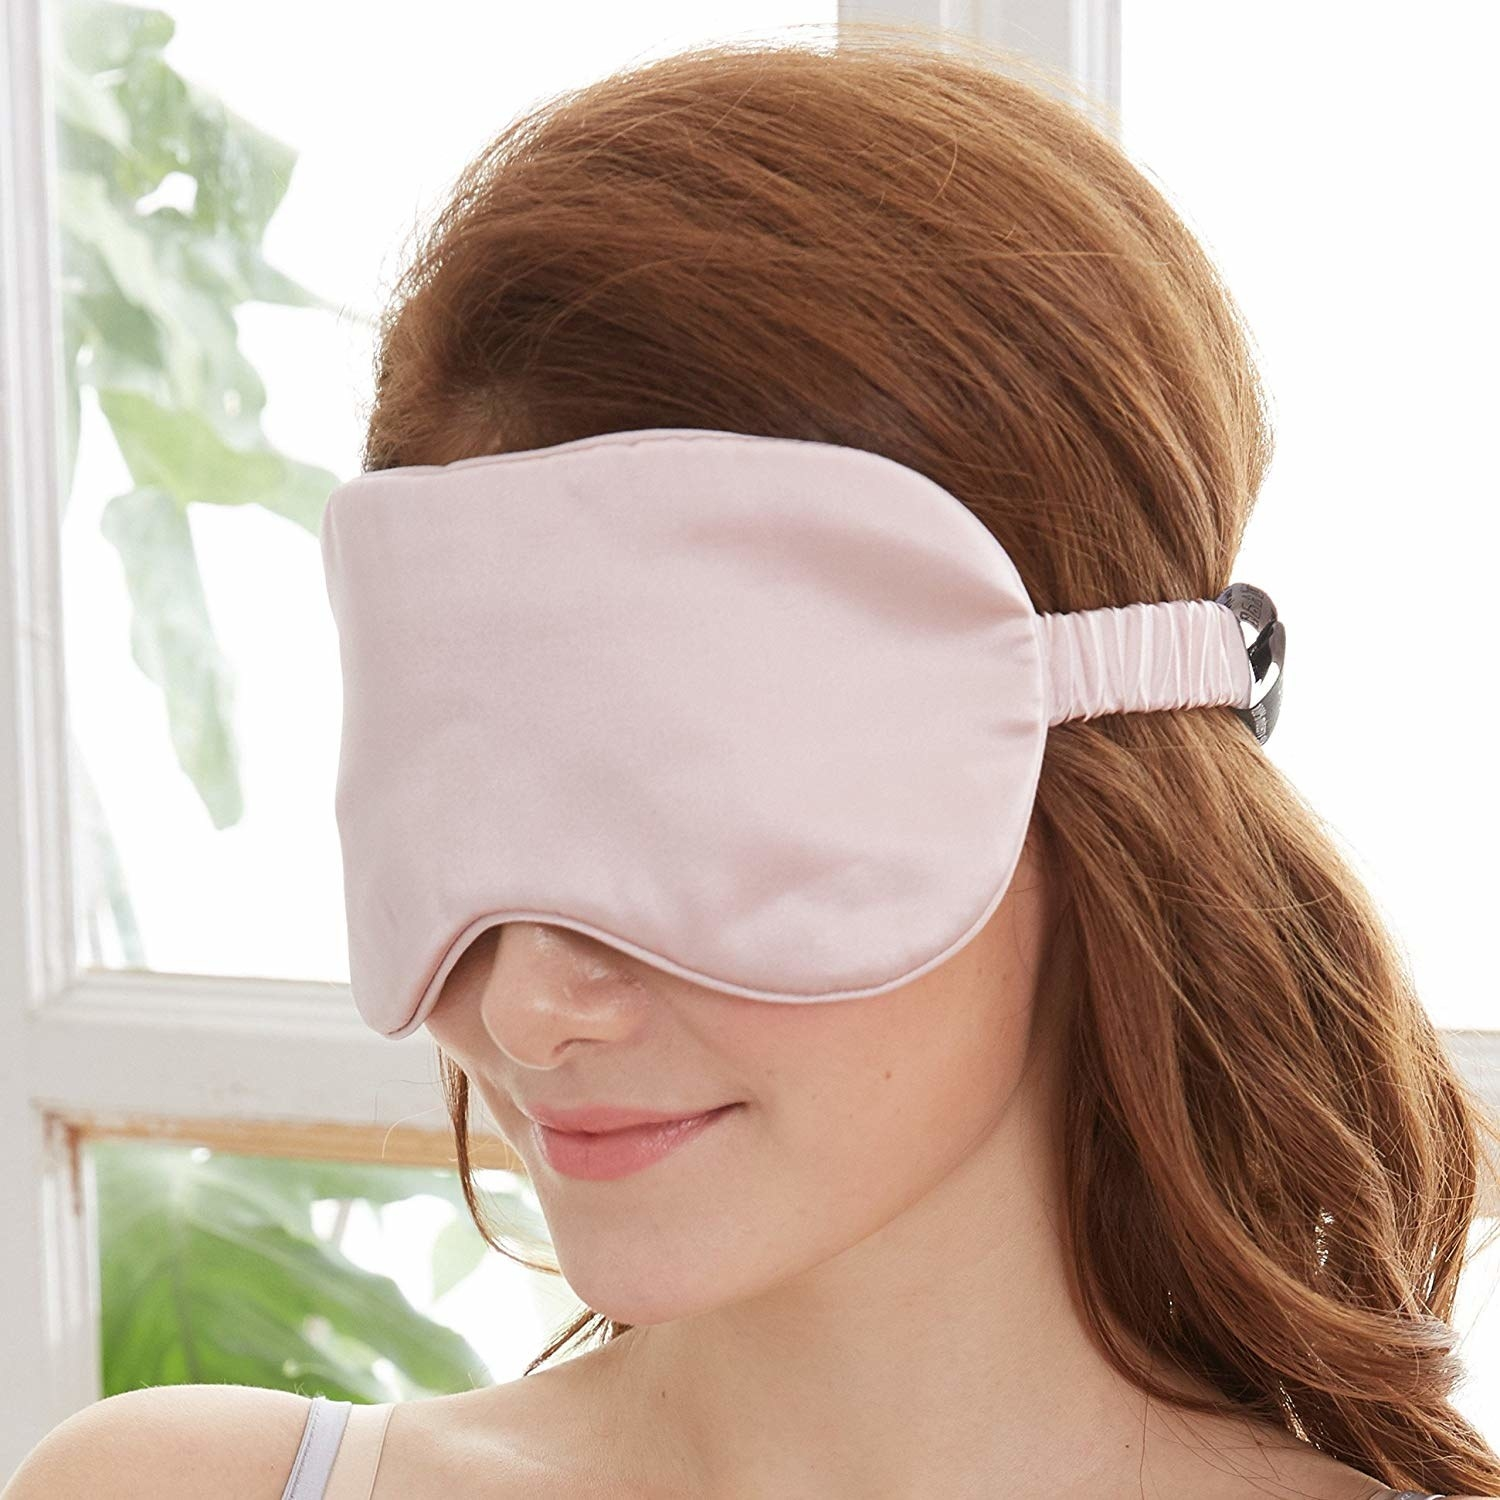 A person wearing the silk eye mask